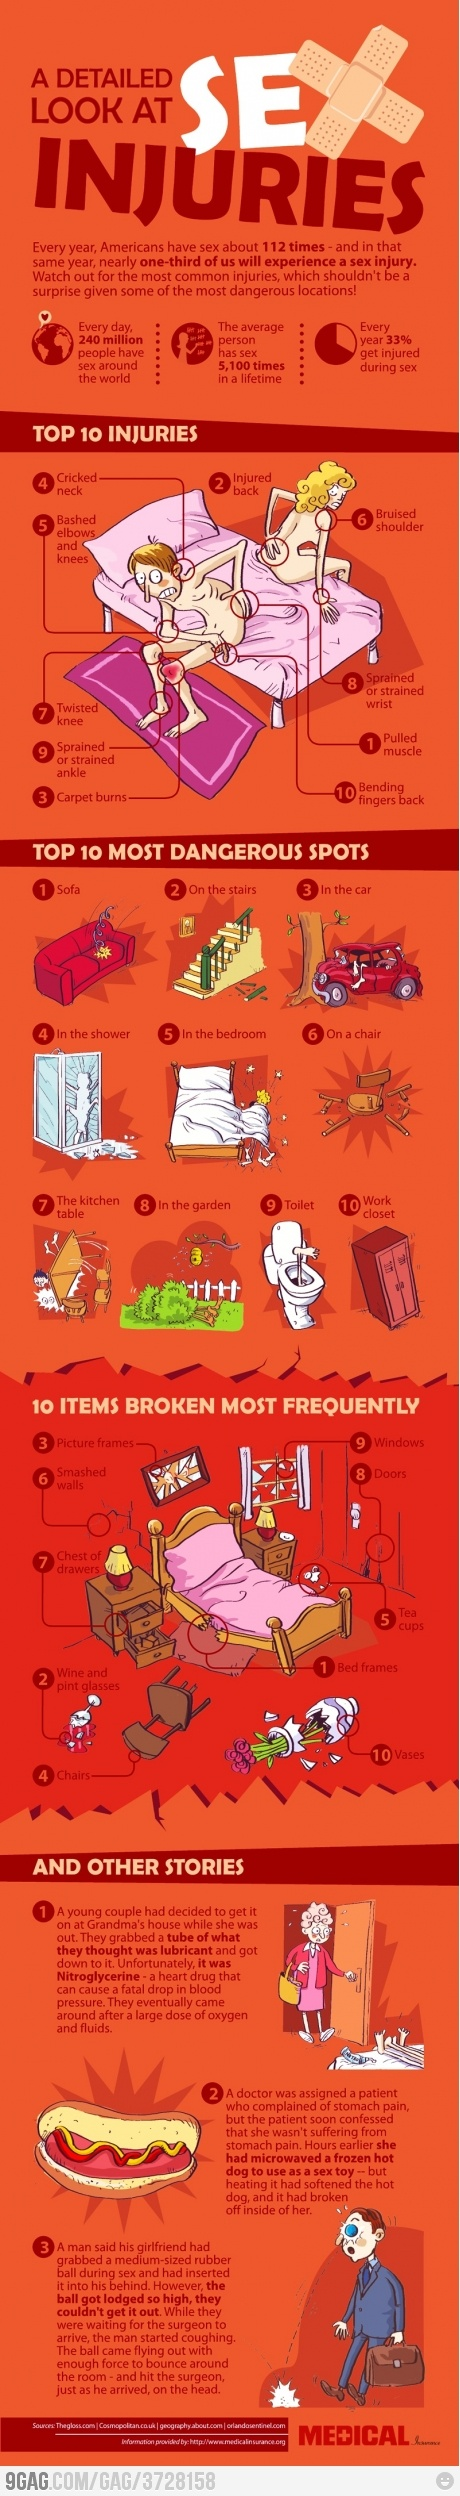 Sex injuries infographic